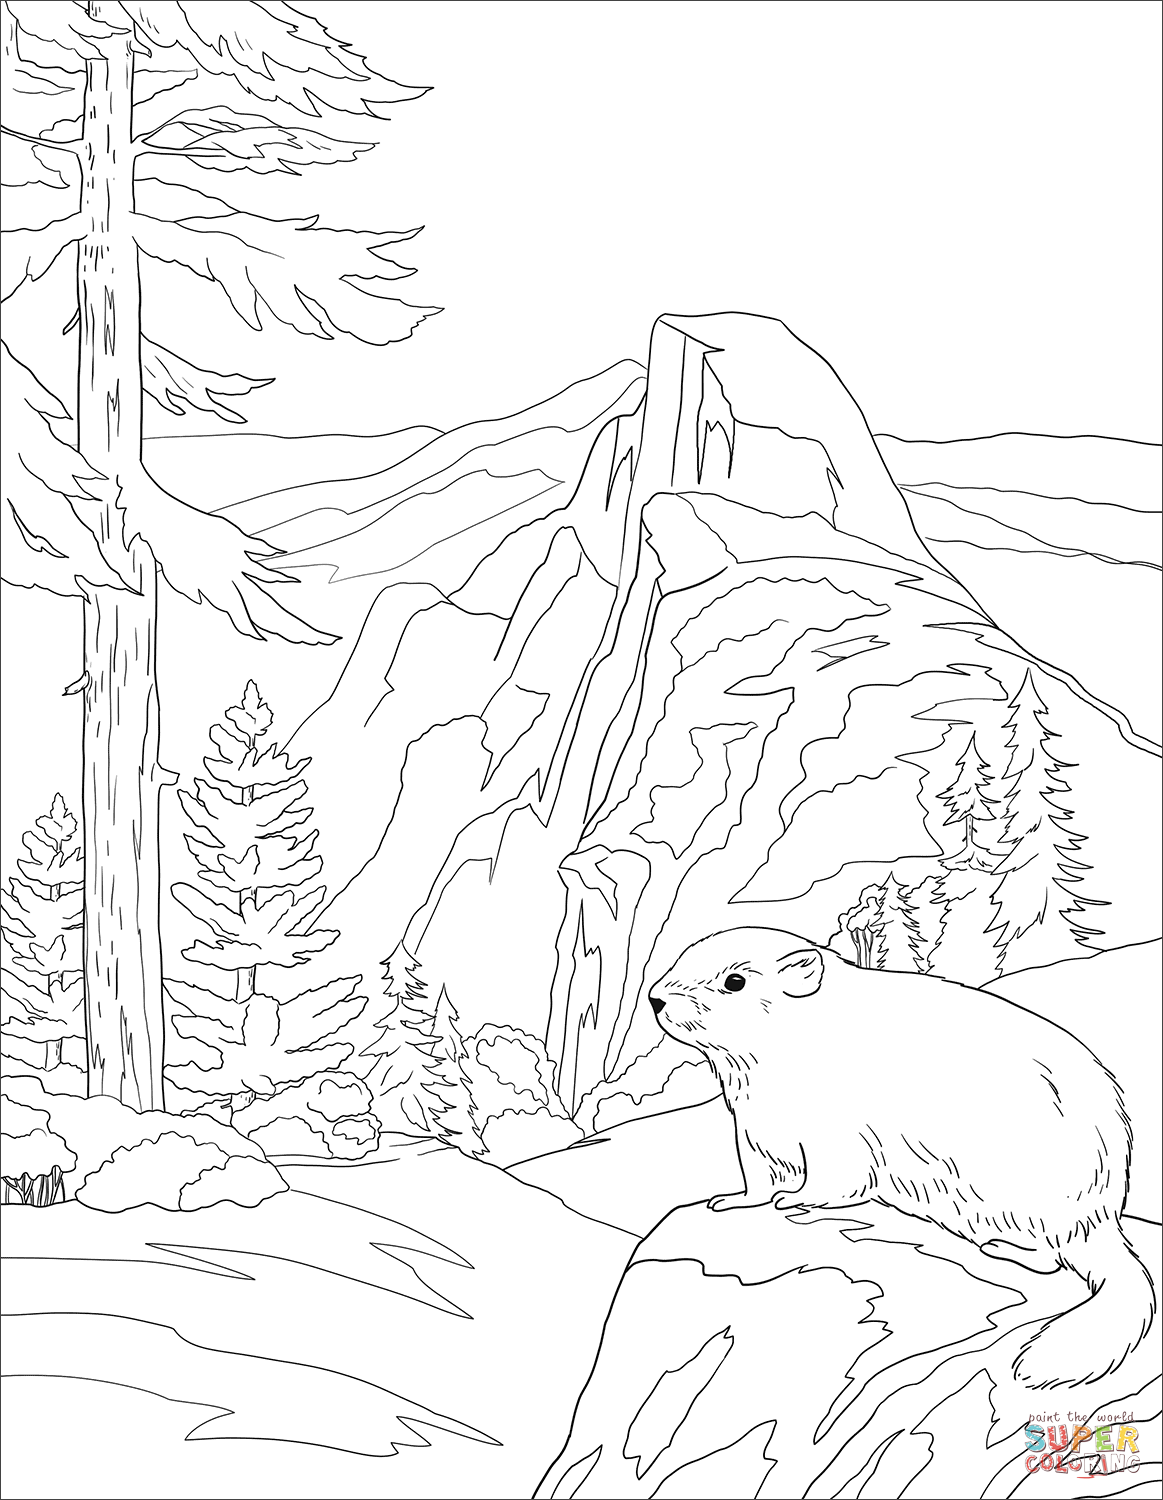 Yosemite National Park Coloring Page Free Printable Coloring